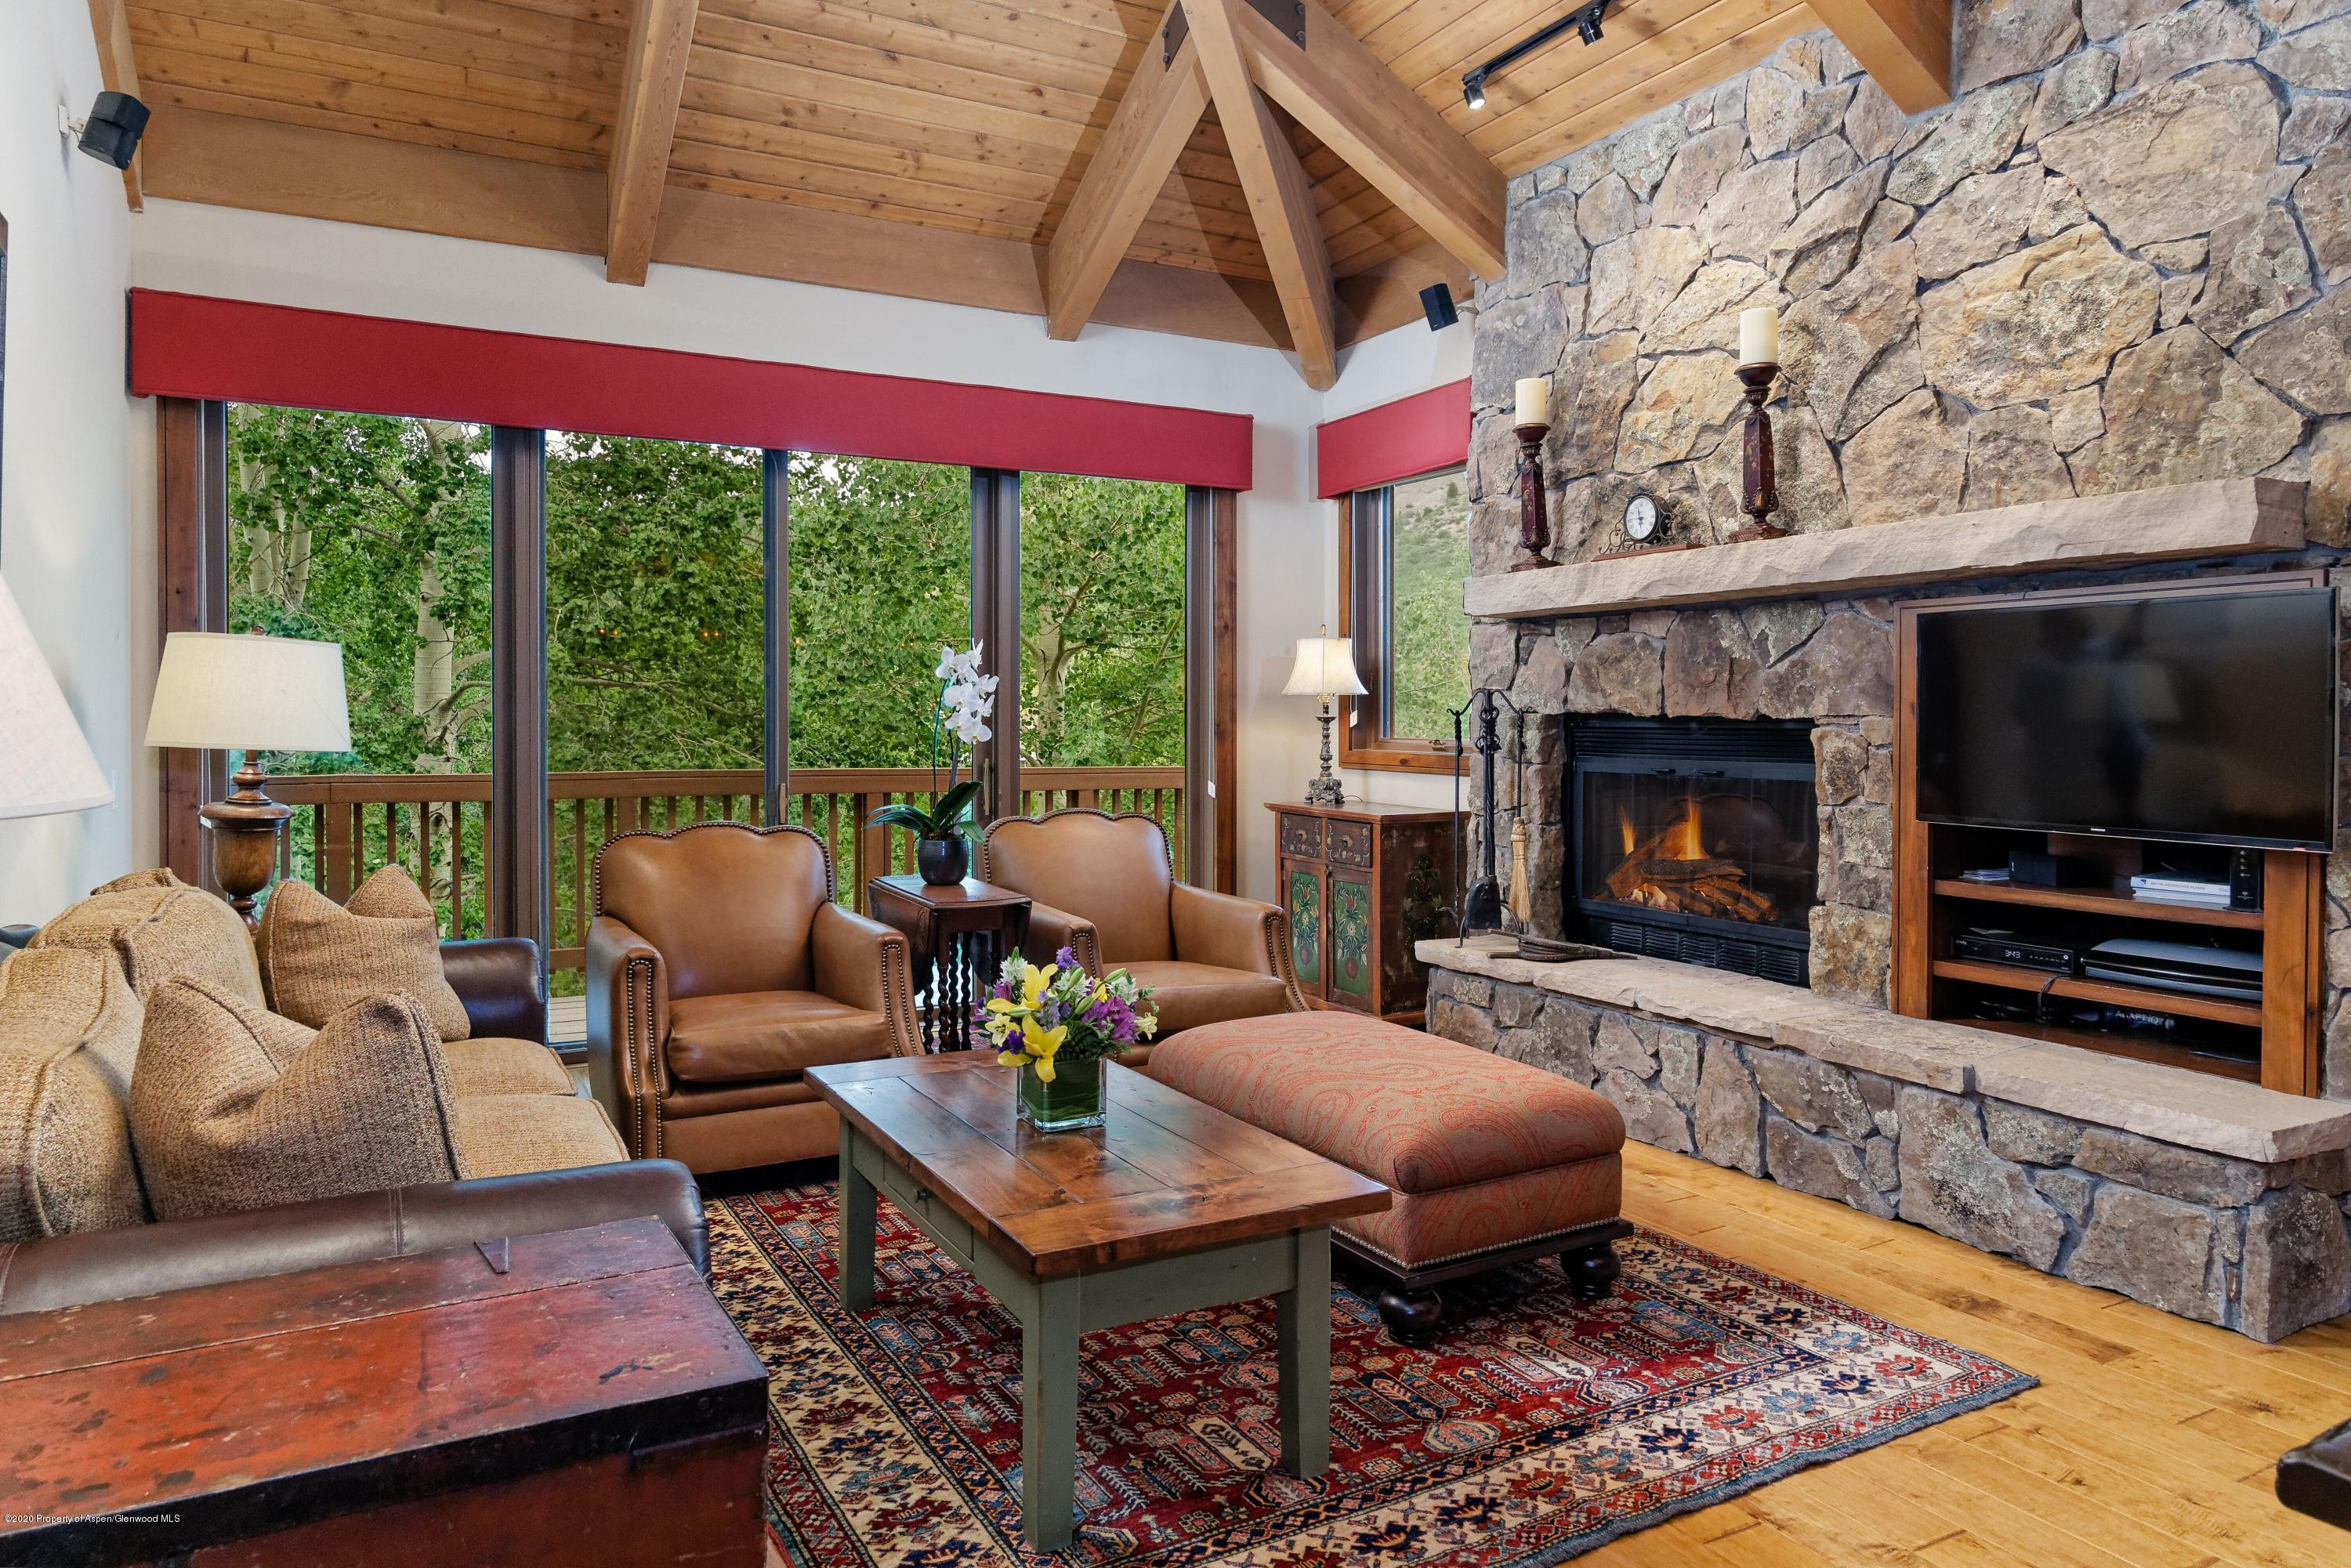 Snowmass Ski In And Ski Out Homes For Rent Over Christmas 2020 For 14 800 Ridge Road, #14, Snowmass Village, CO 81615 | Aspen Resort